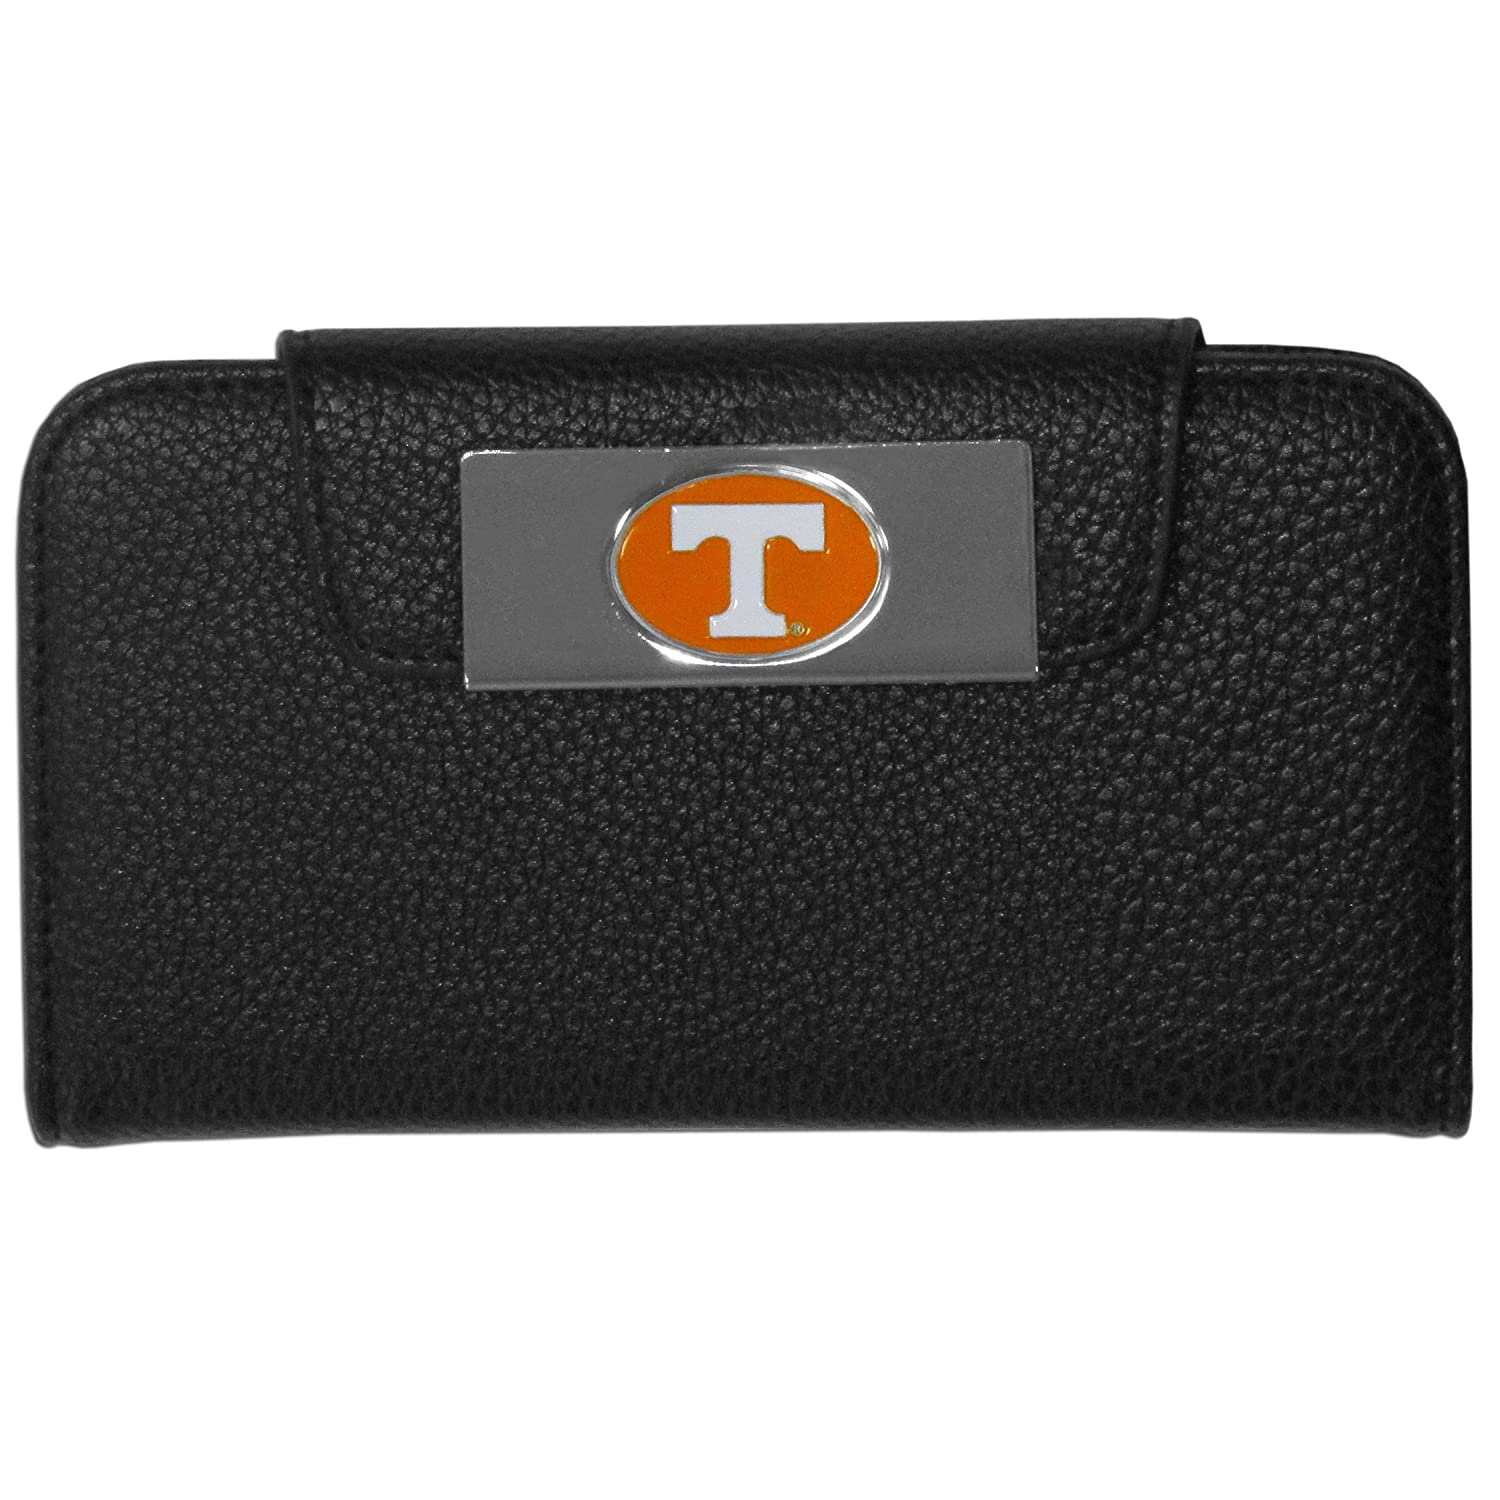 Siskiyou NCAA Galaxy S4 Wallet Case